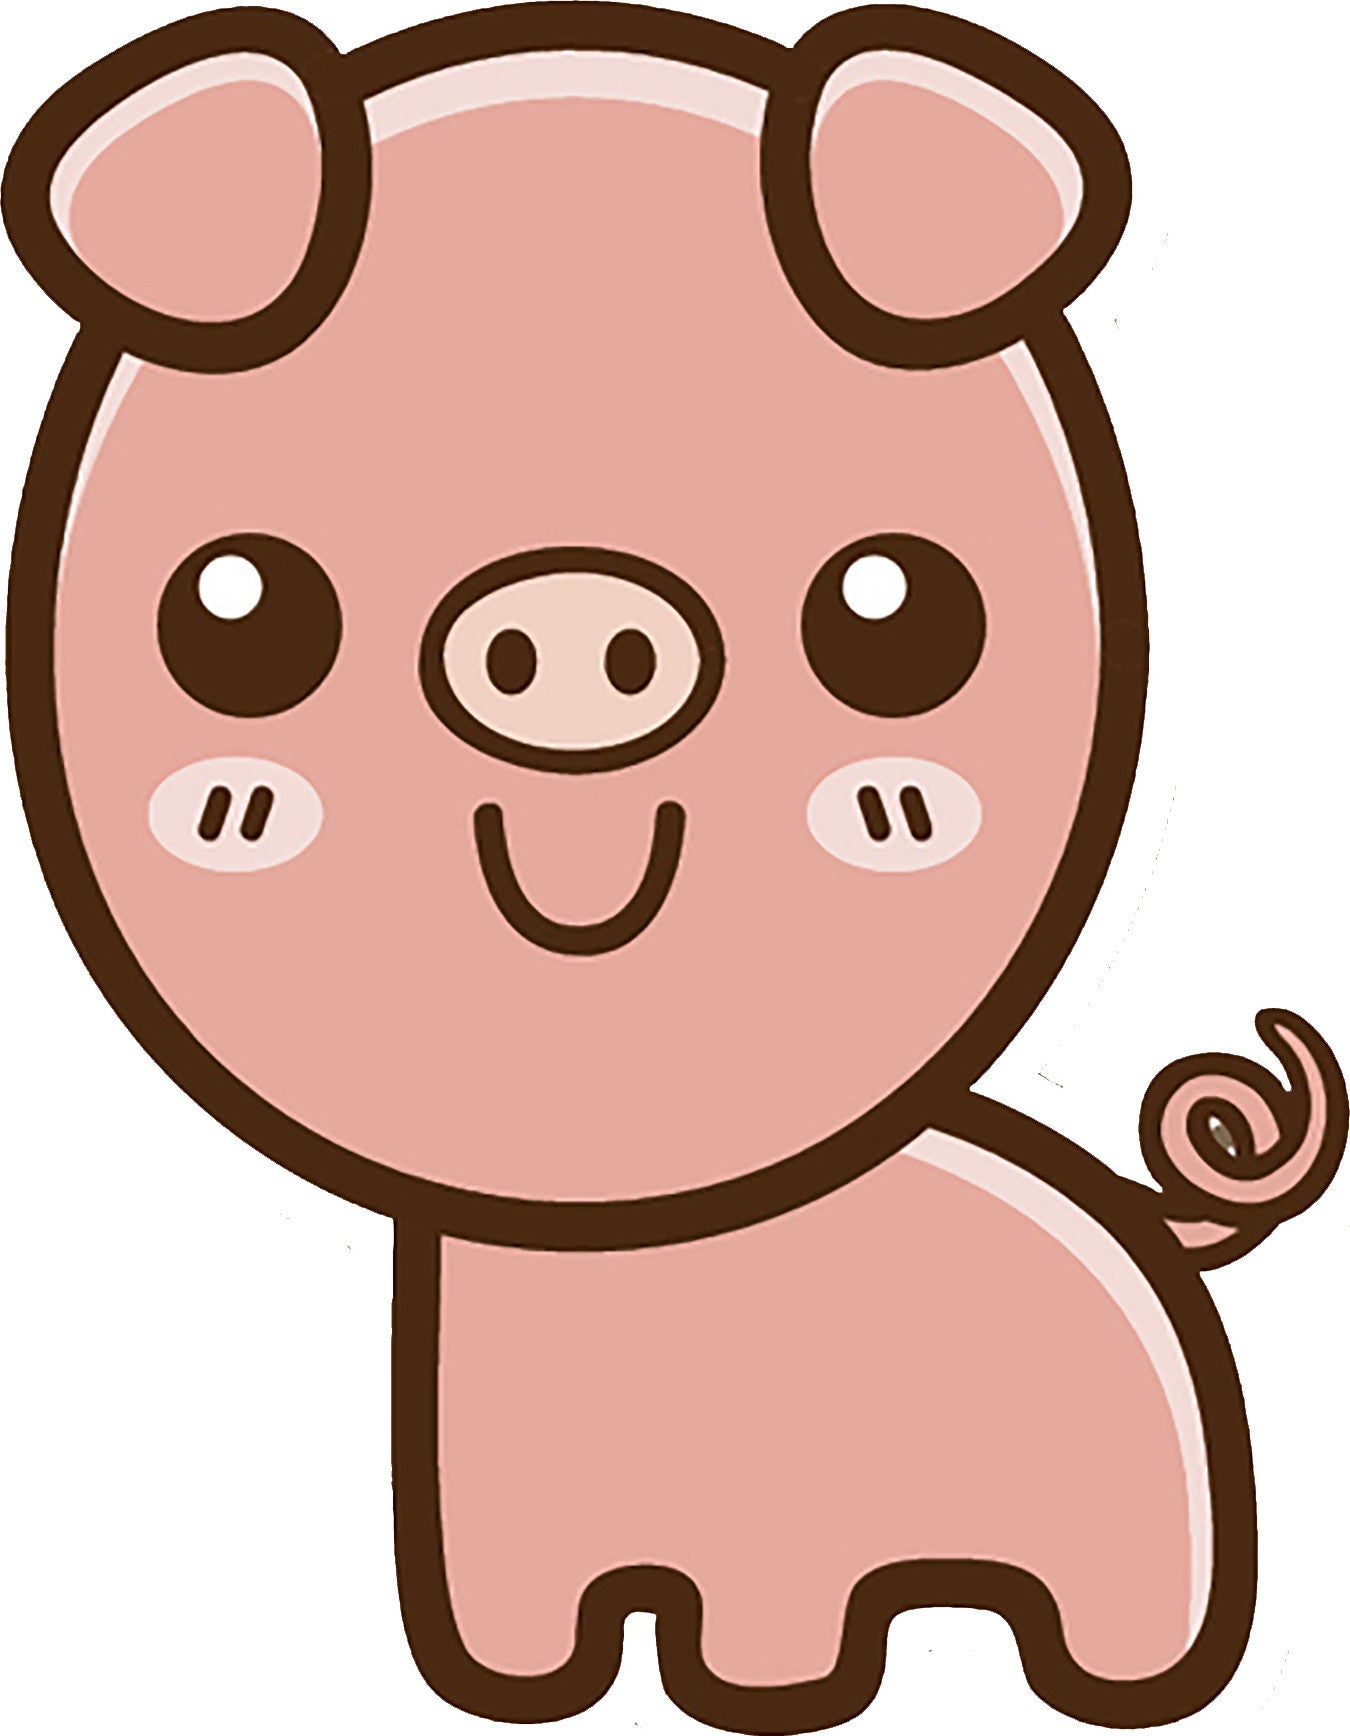 Cute Simple Kawaii Animal Cartoon Icon - Pig Vinyl Decal Sticker